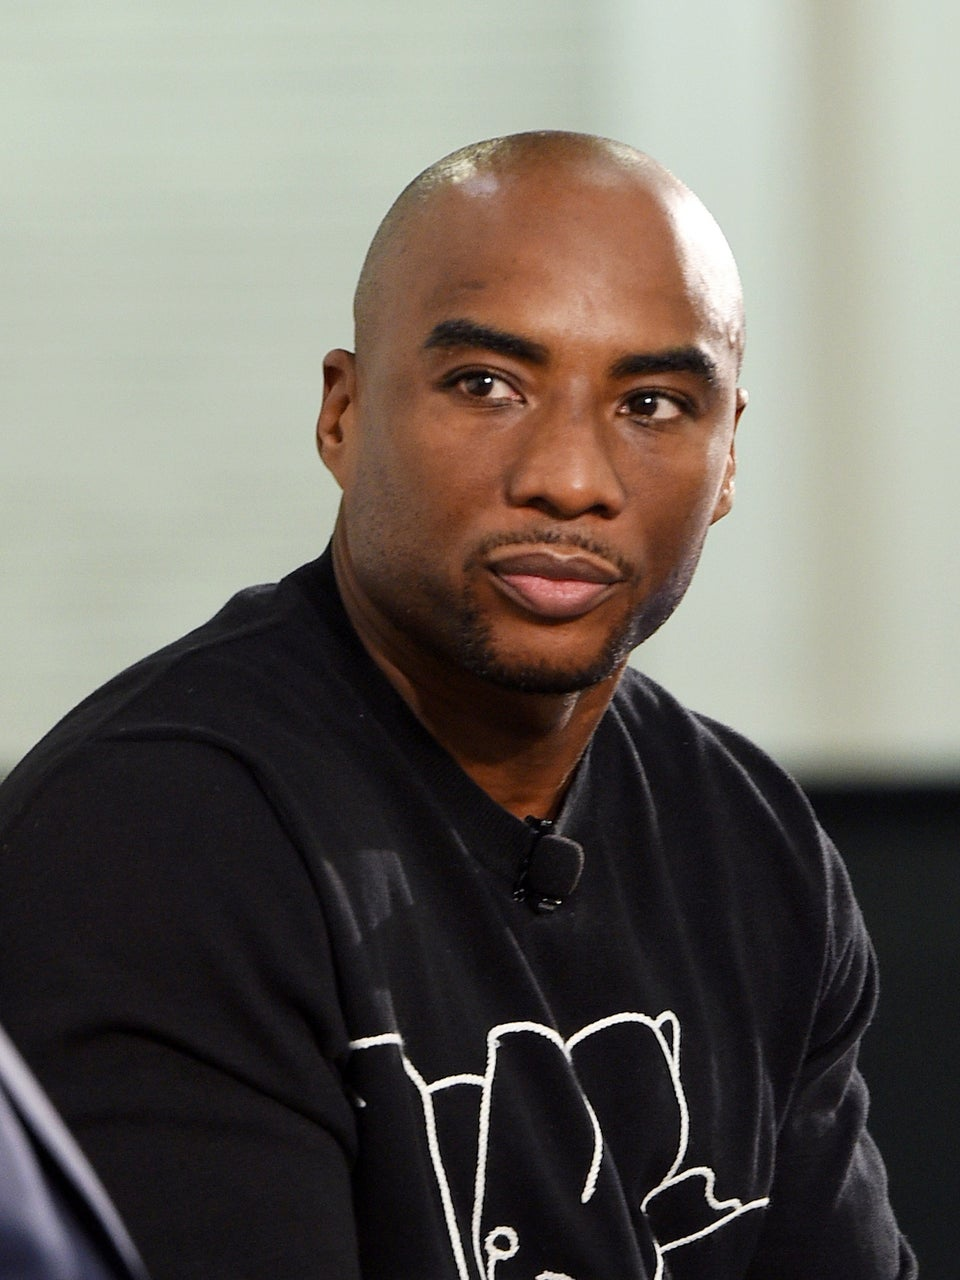 'The Breakfast Club's' Charlamagne Tha God Opens Up About Being Molested As A Child For 'UNCENSORED'